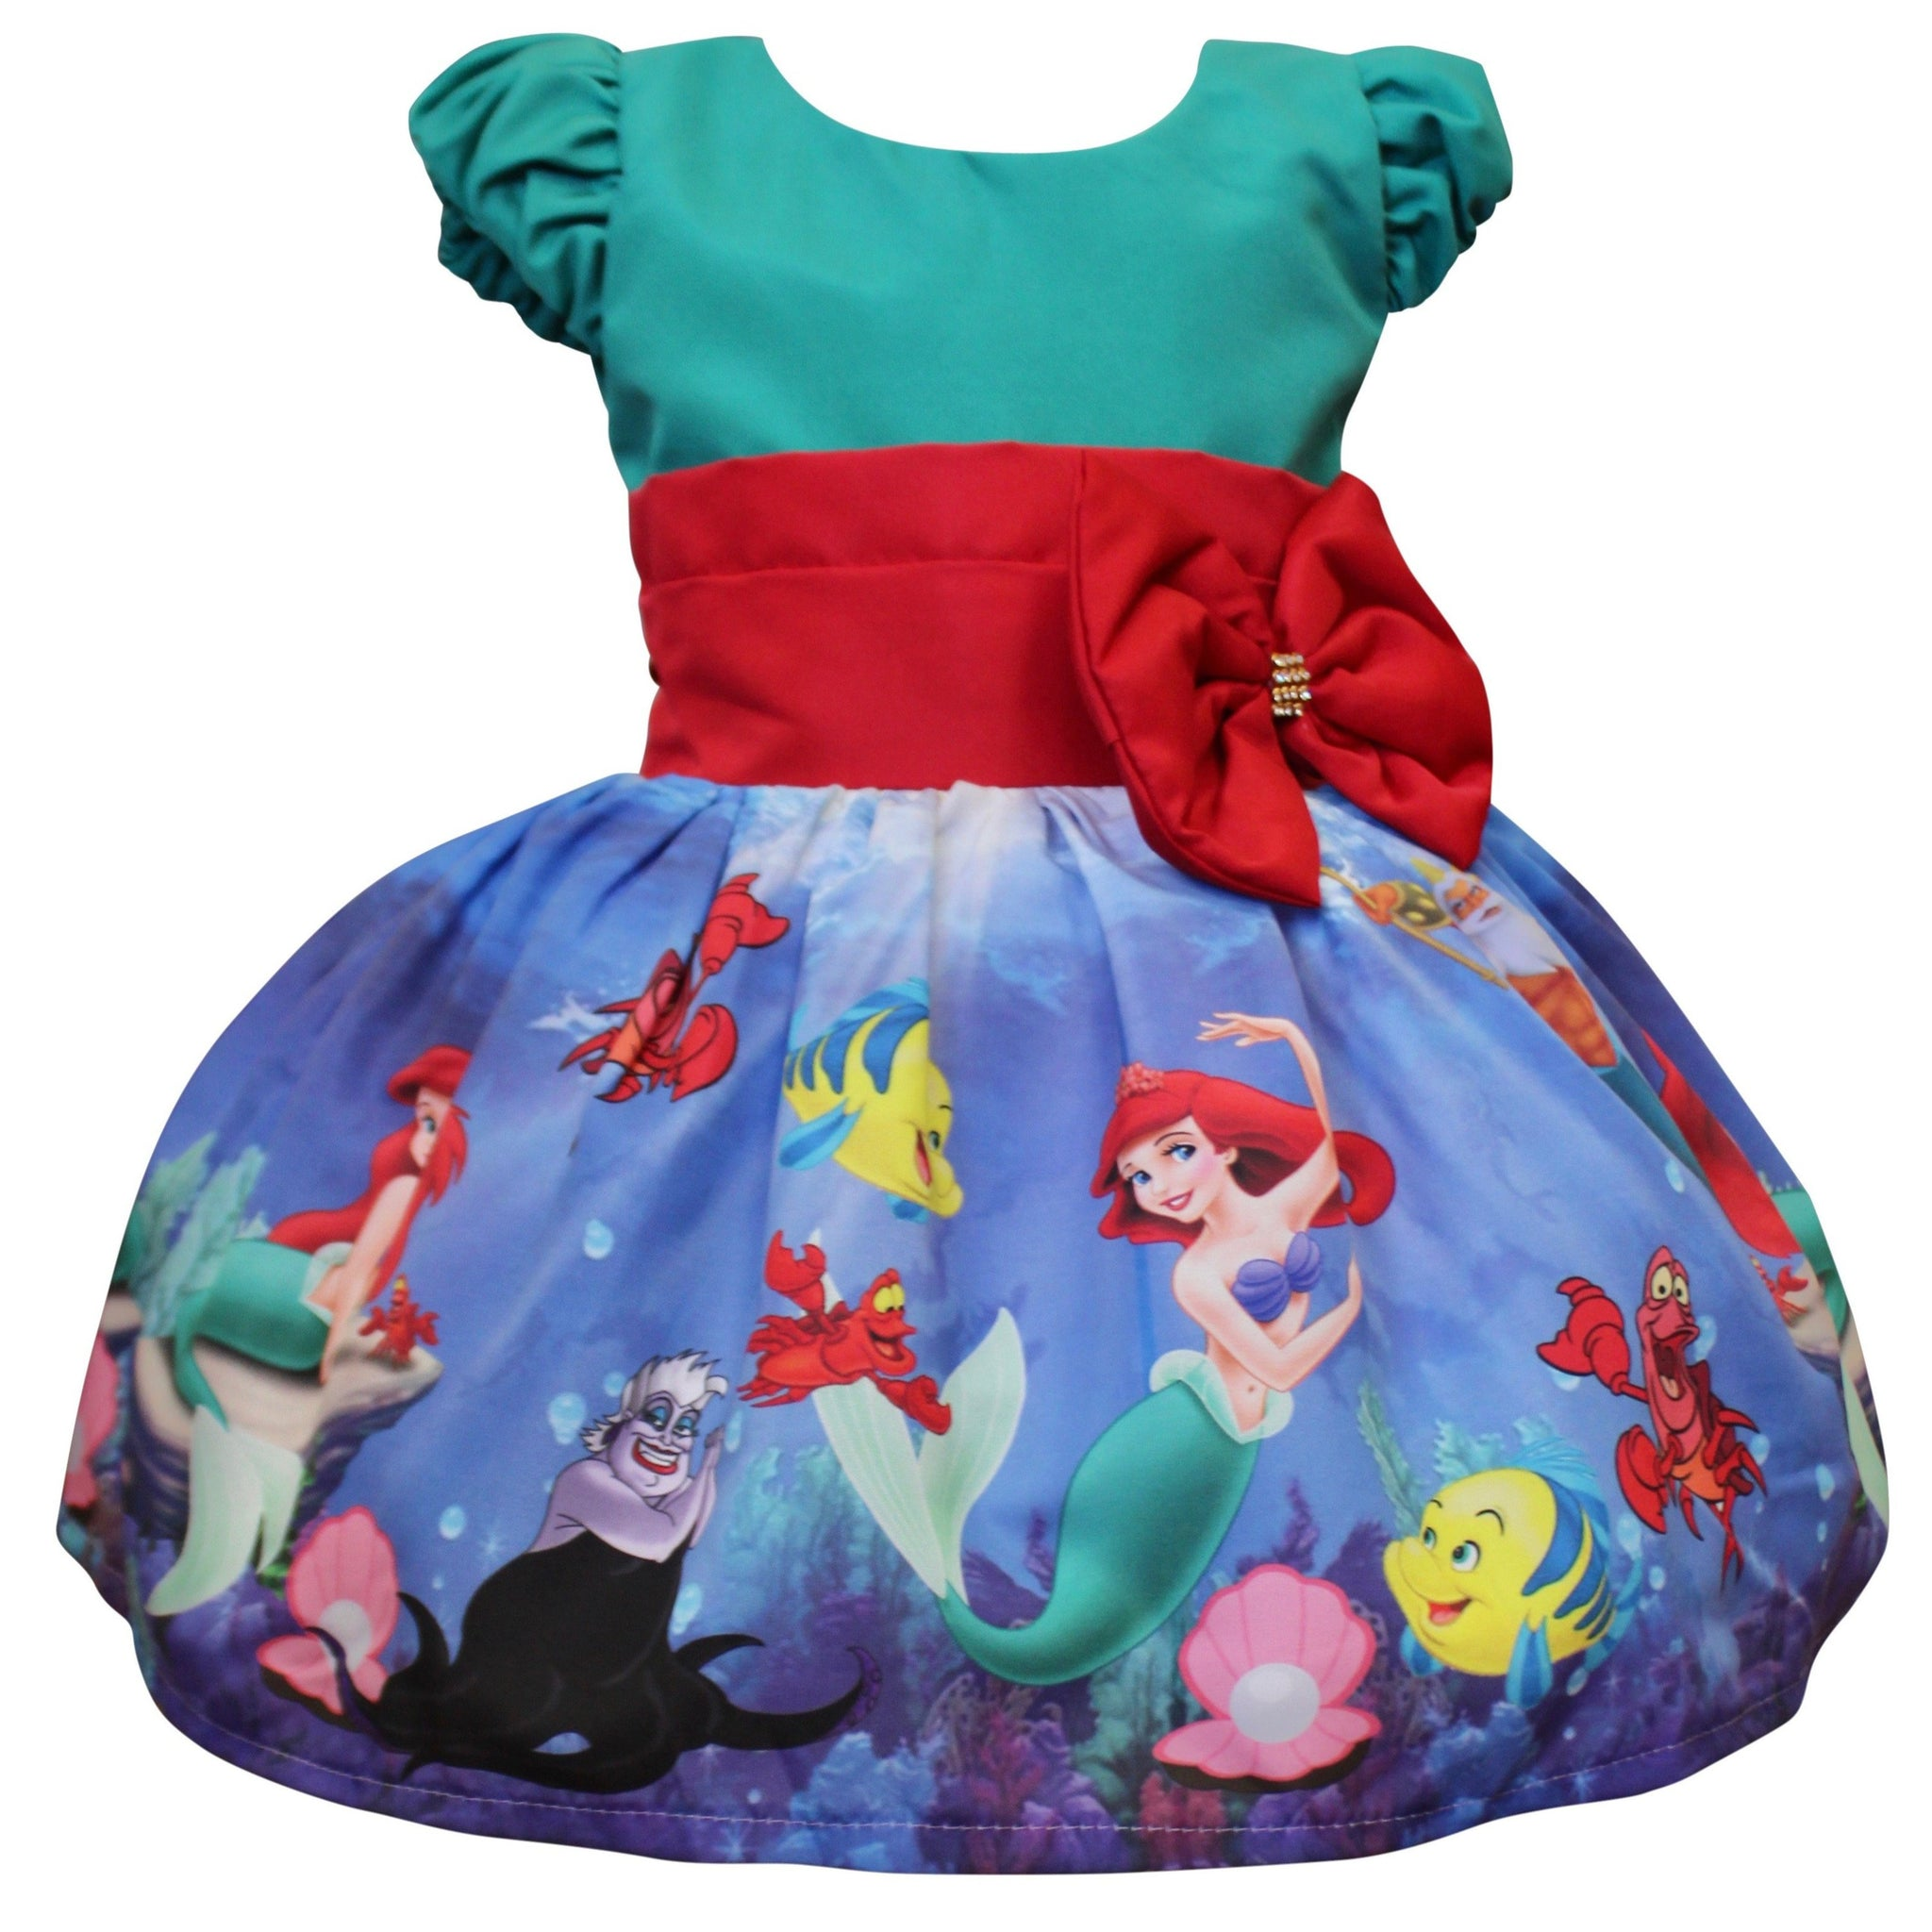 The Little Mermaid Dress by Baby Eden